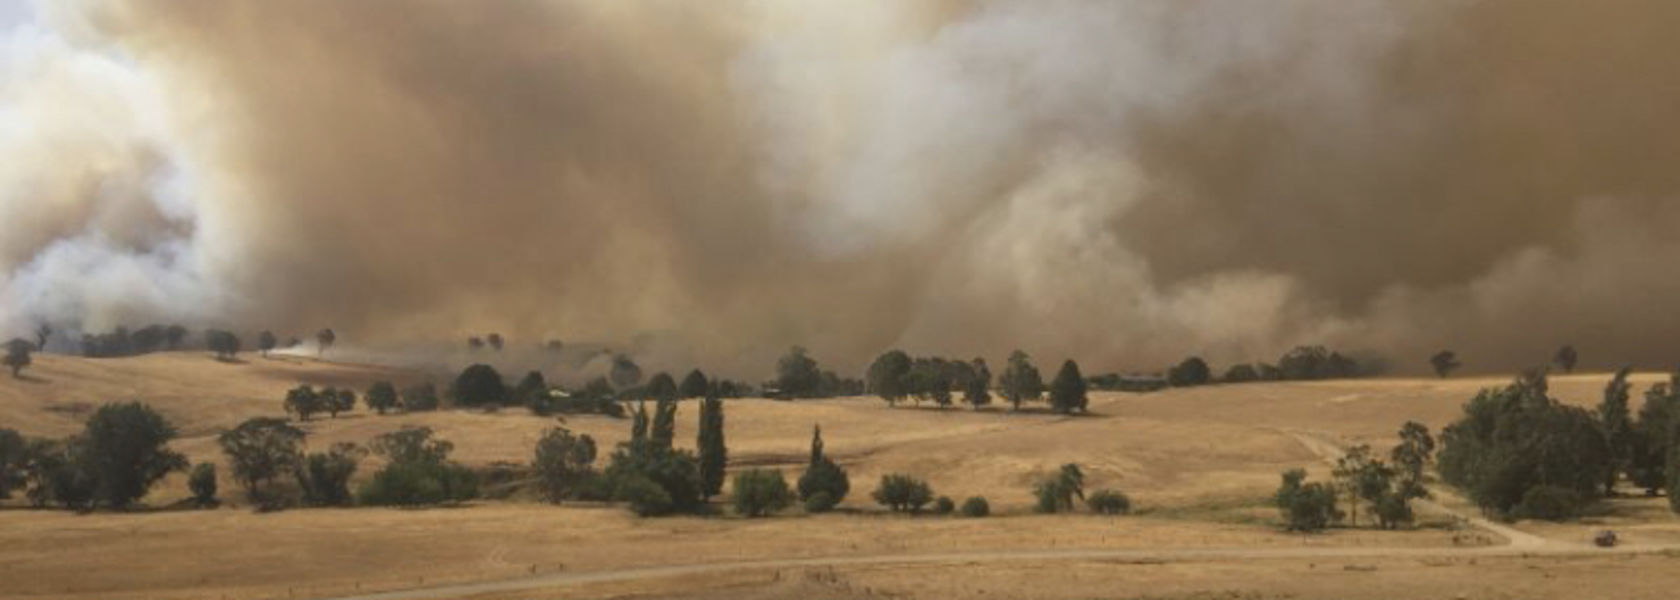 Fire preparation should include plans for livestock